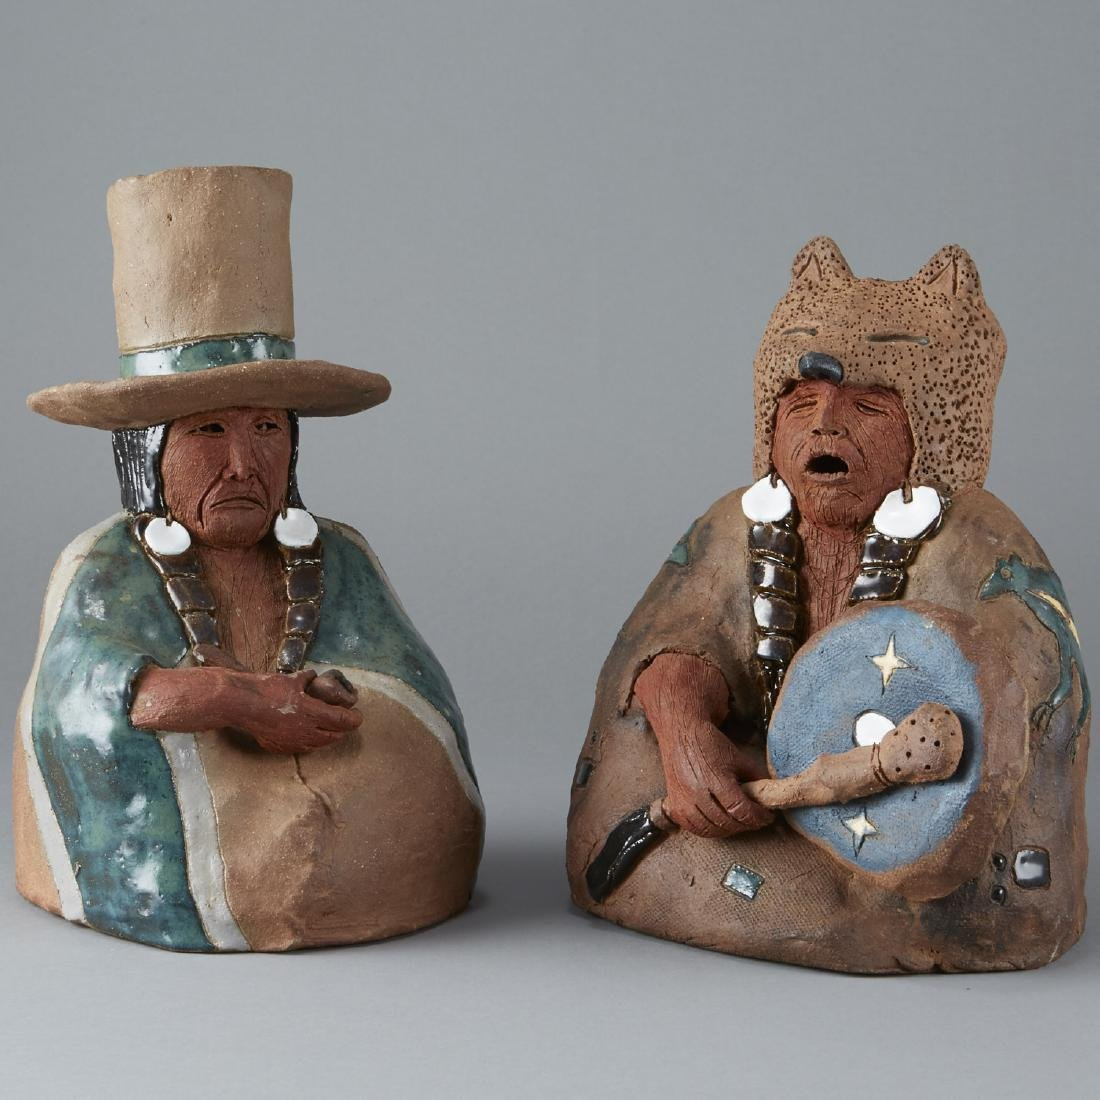 2 Glen LaFontaine Ceramic Sculptures